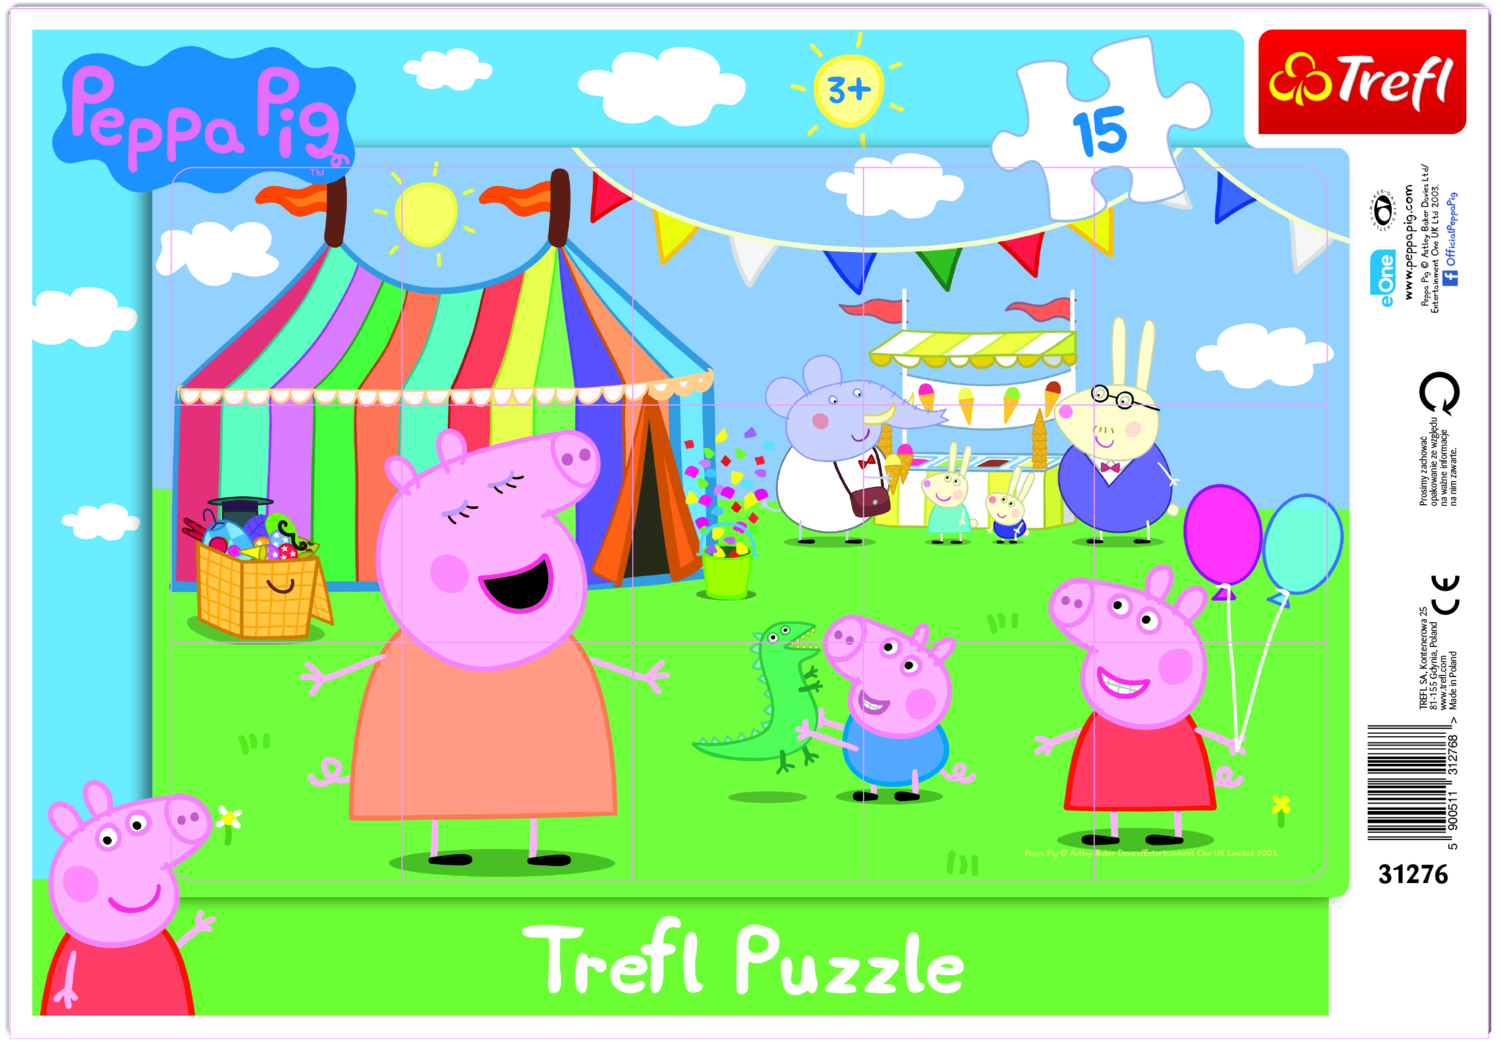 PUZZLE 15 PEPPA THE PIG